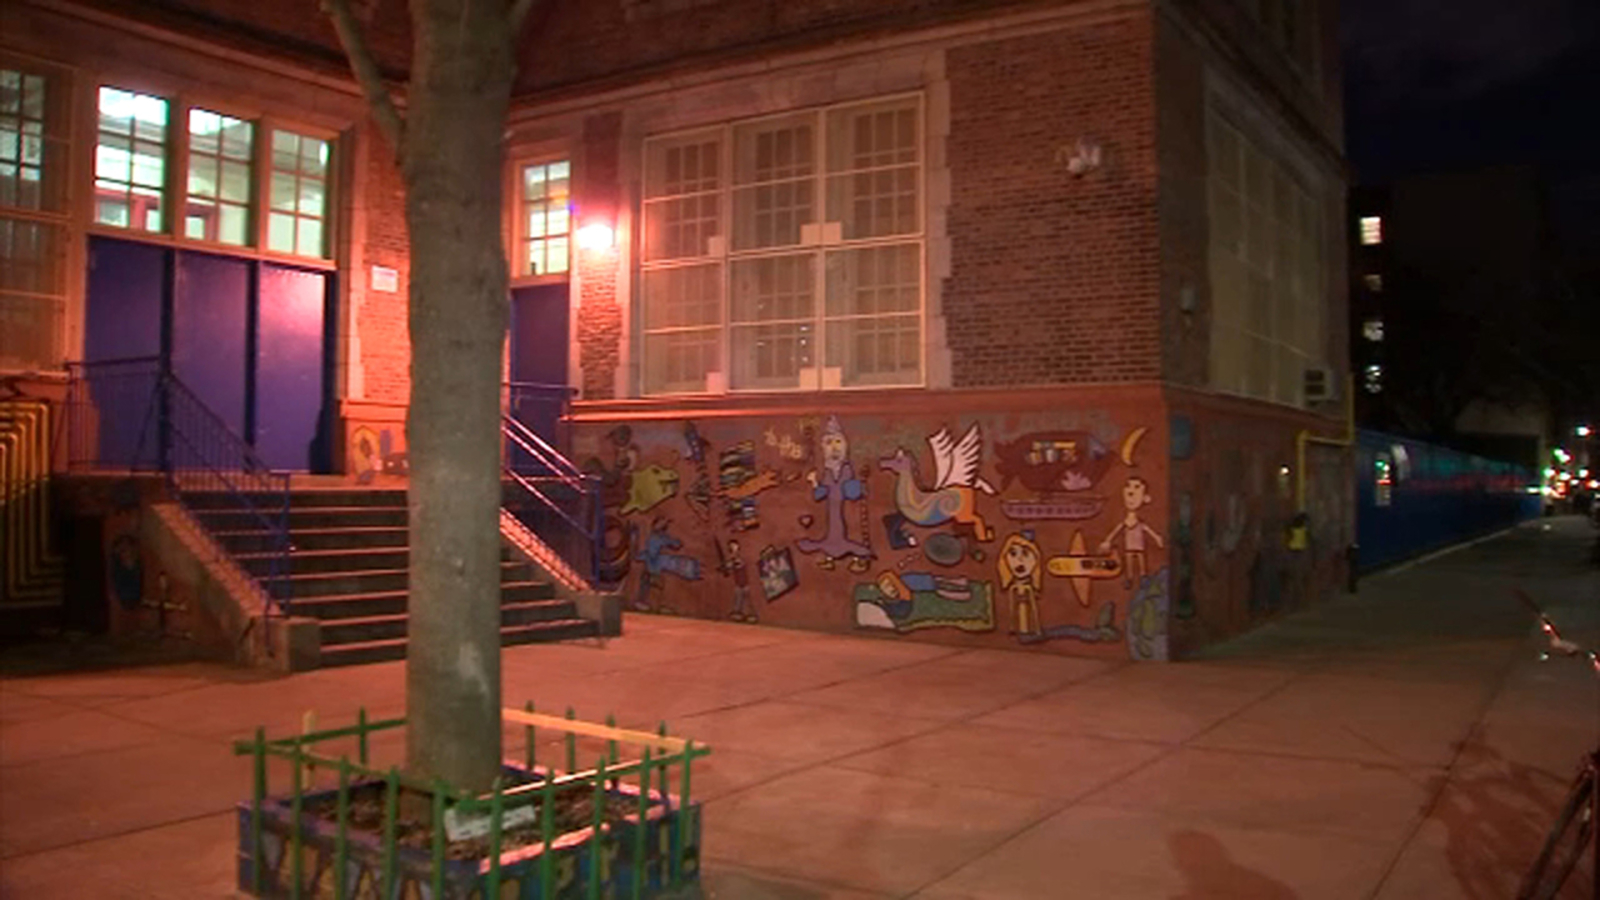 Boy 5 Walks Out Of Nyc School Ends Up On Subway Platform